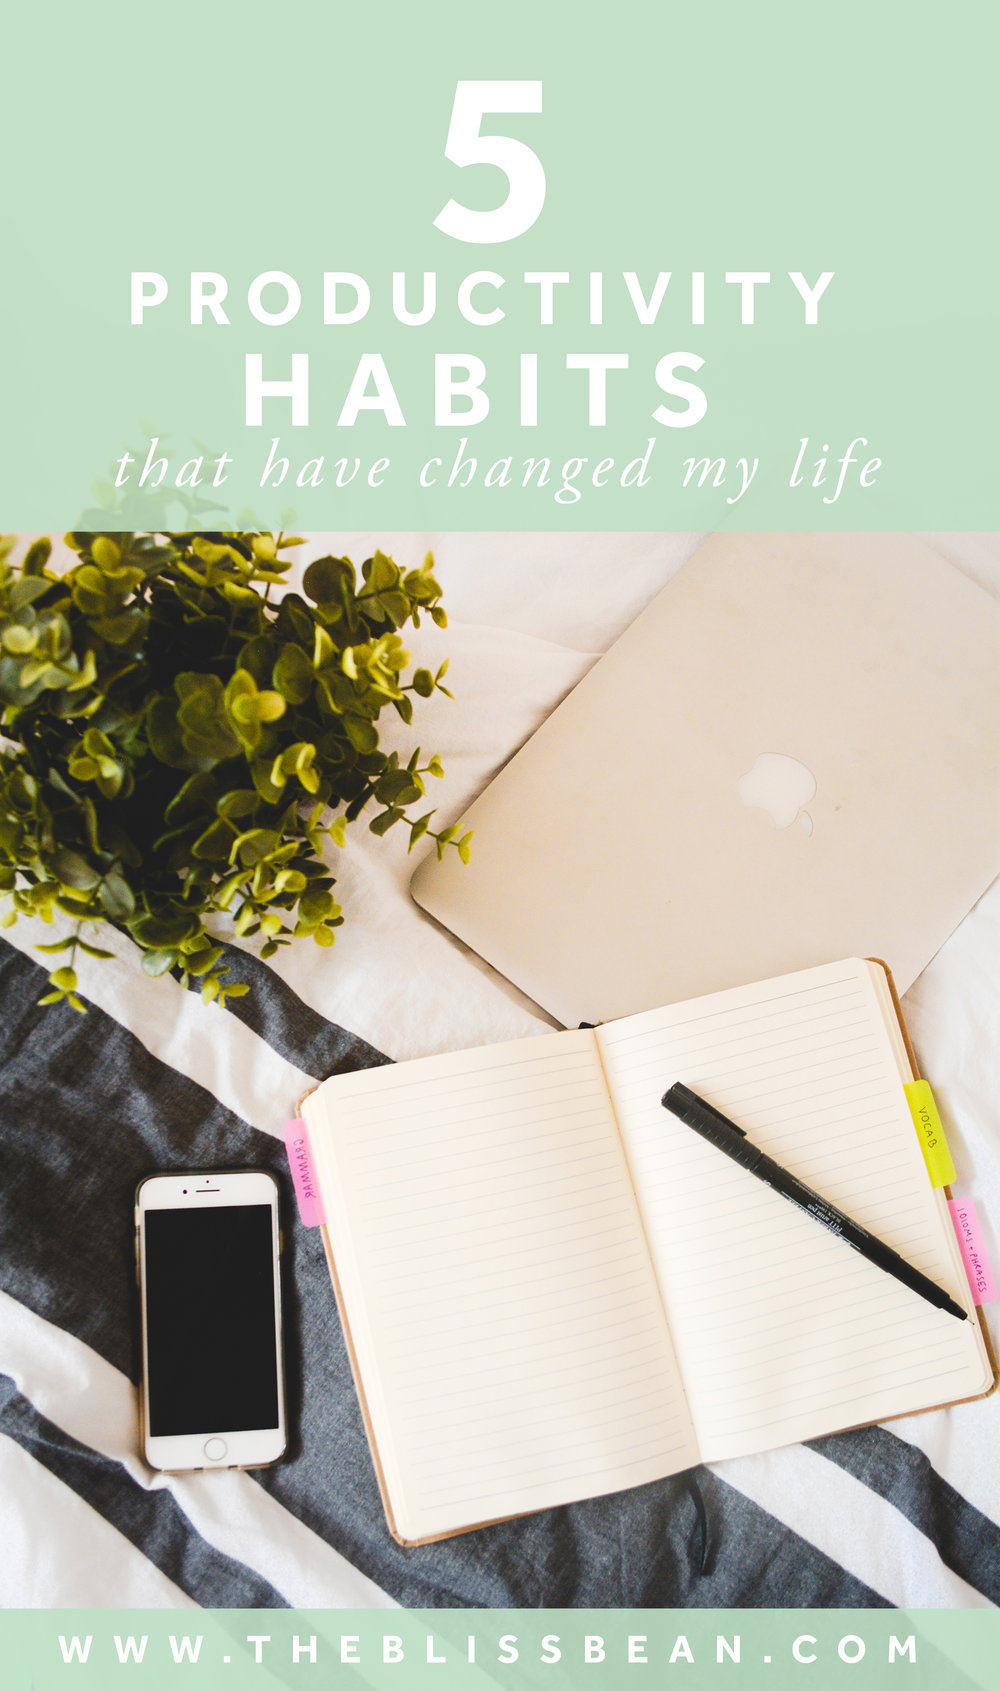 0 - Cover Image - 5 Productivity Habits that Have Changed My Life Edited (6 of 16).jpg